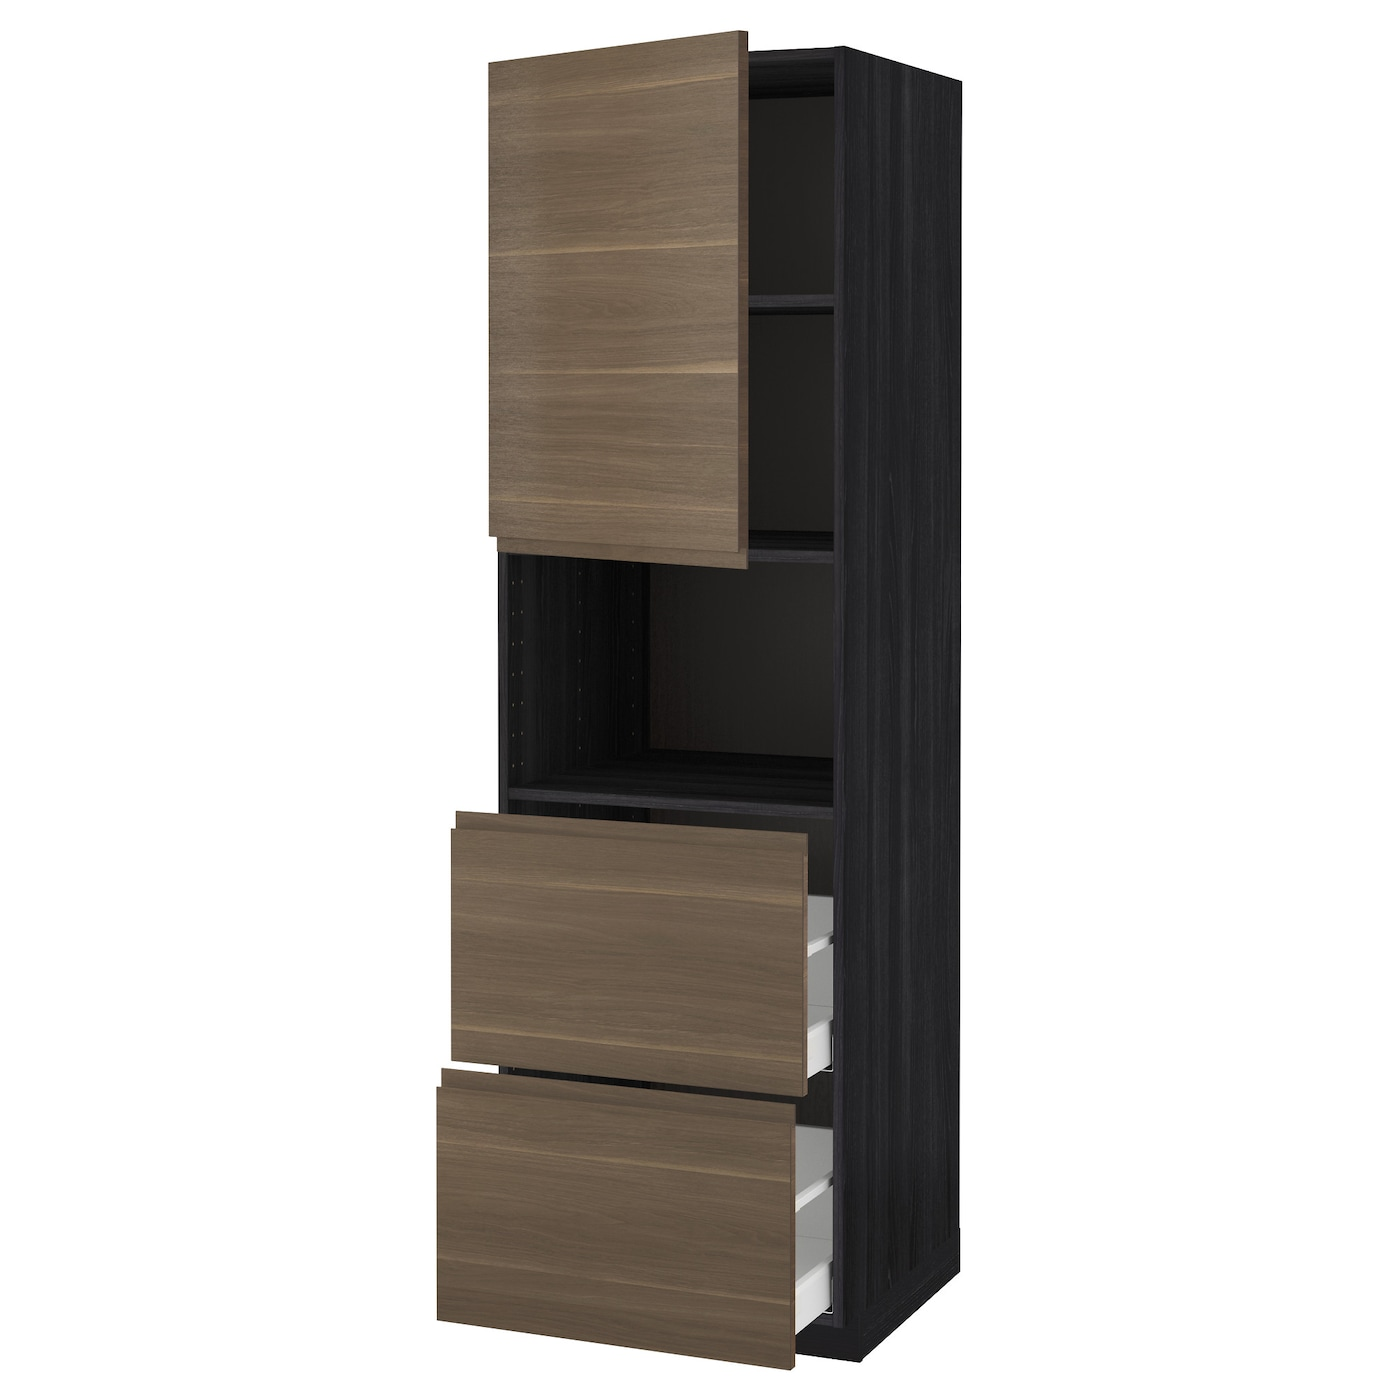 metod maximera hi cab f micro w door 2 drawers black voxtorp walnut 60 x 60 x 200 cm ikea. Black Bedroom Furniture Sets. Home Design Ideas